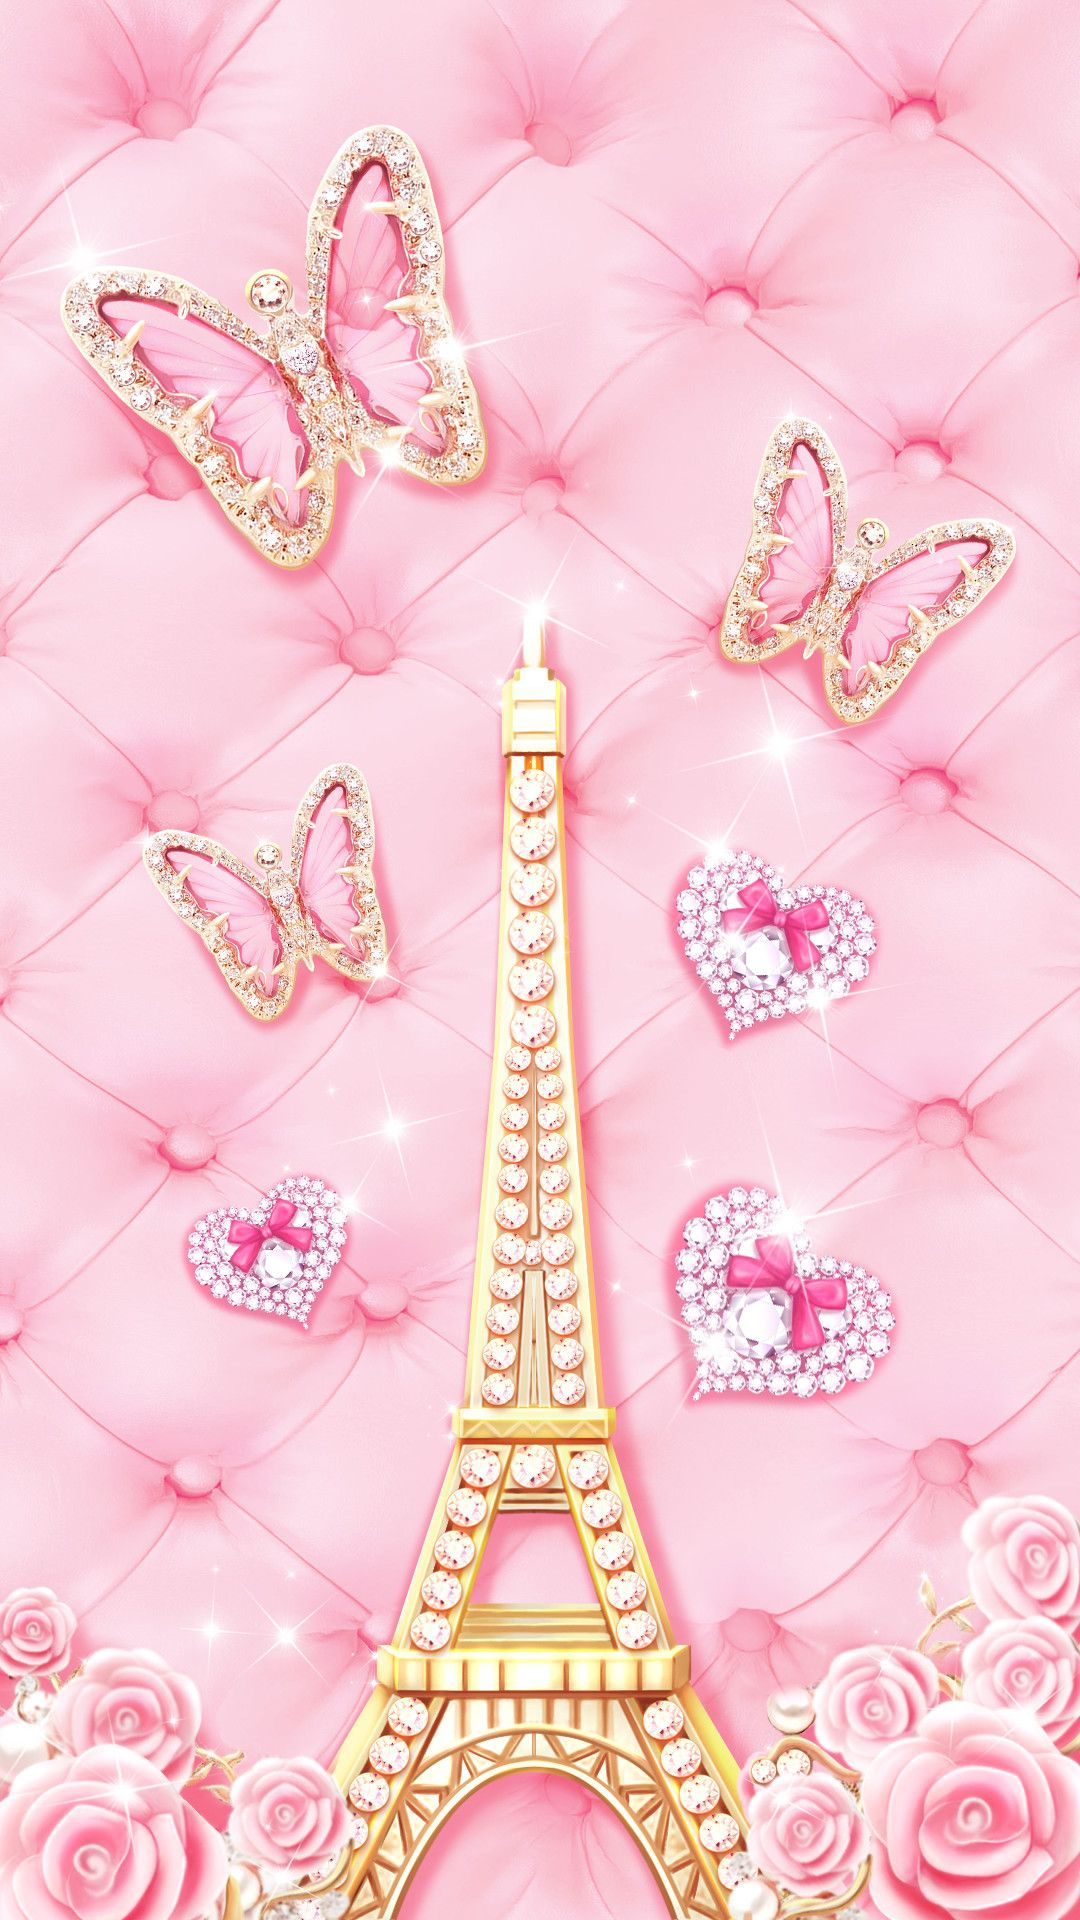 Cute Pink Hd Wallpapers Top Free Cute Pink Hd Backgrounds Wallpaperaccess | see more about wallpaper, pink and background. cute pink hd wallpapers top free cute